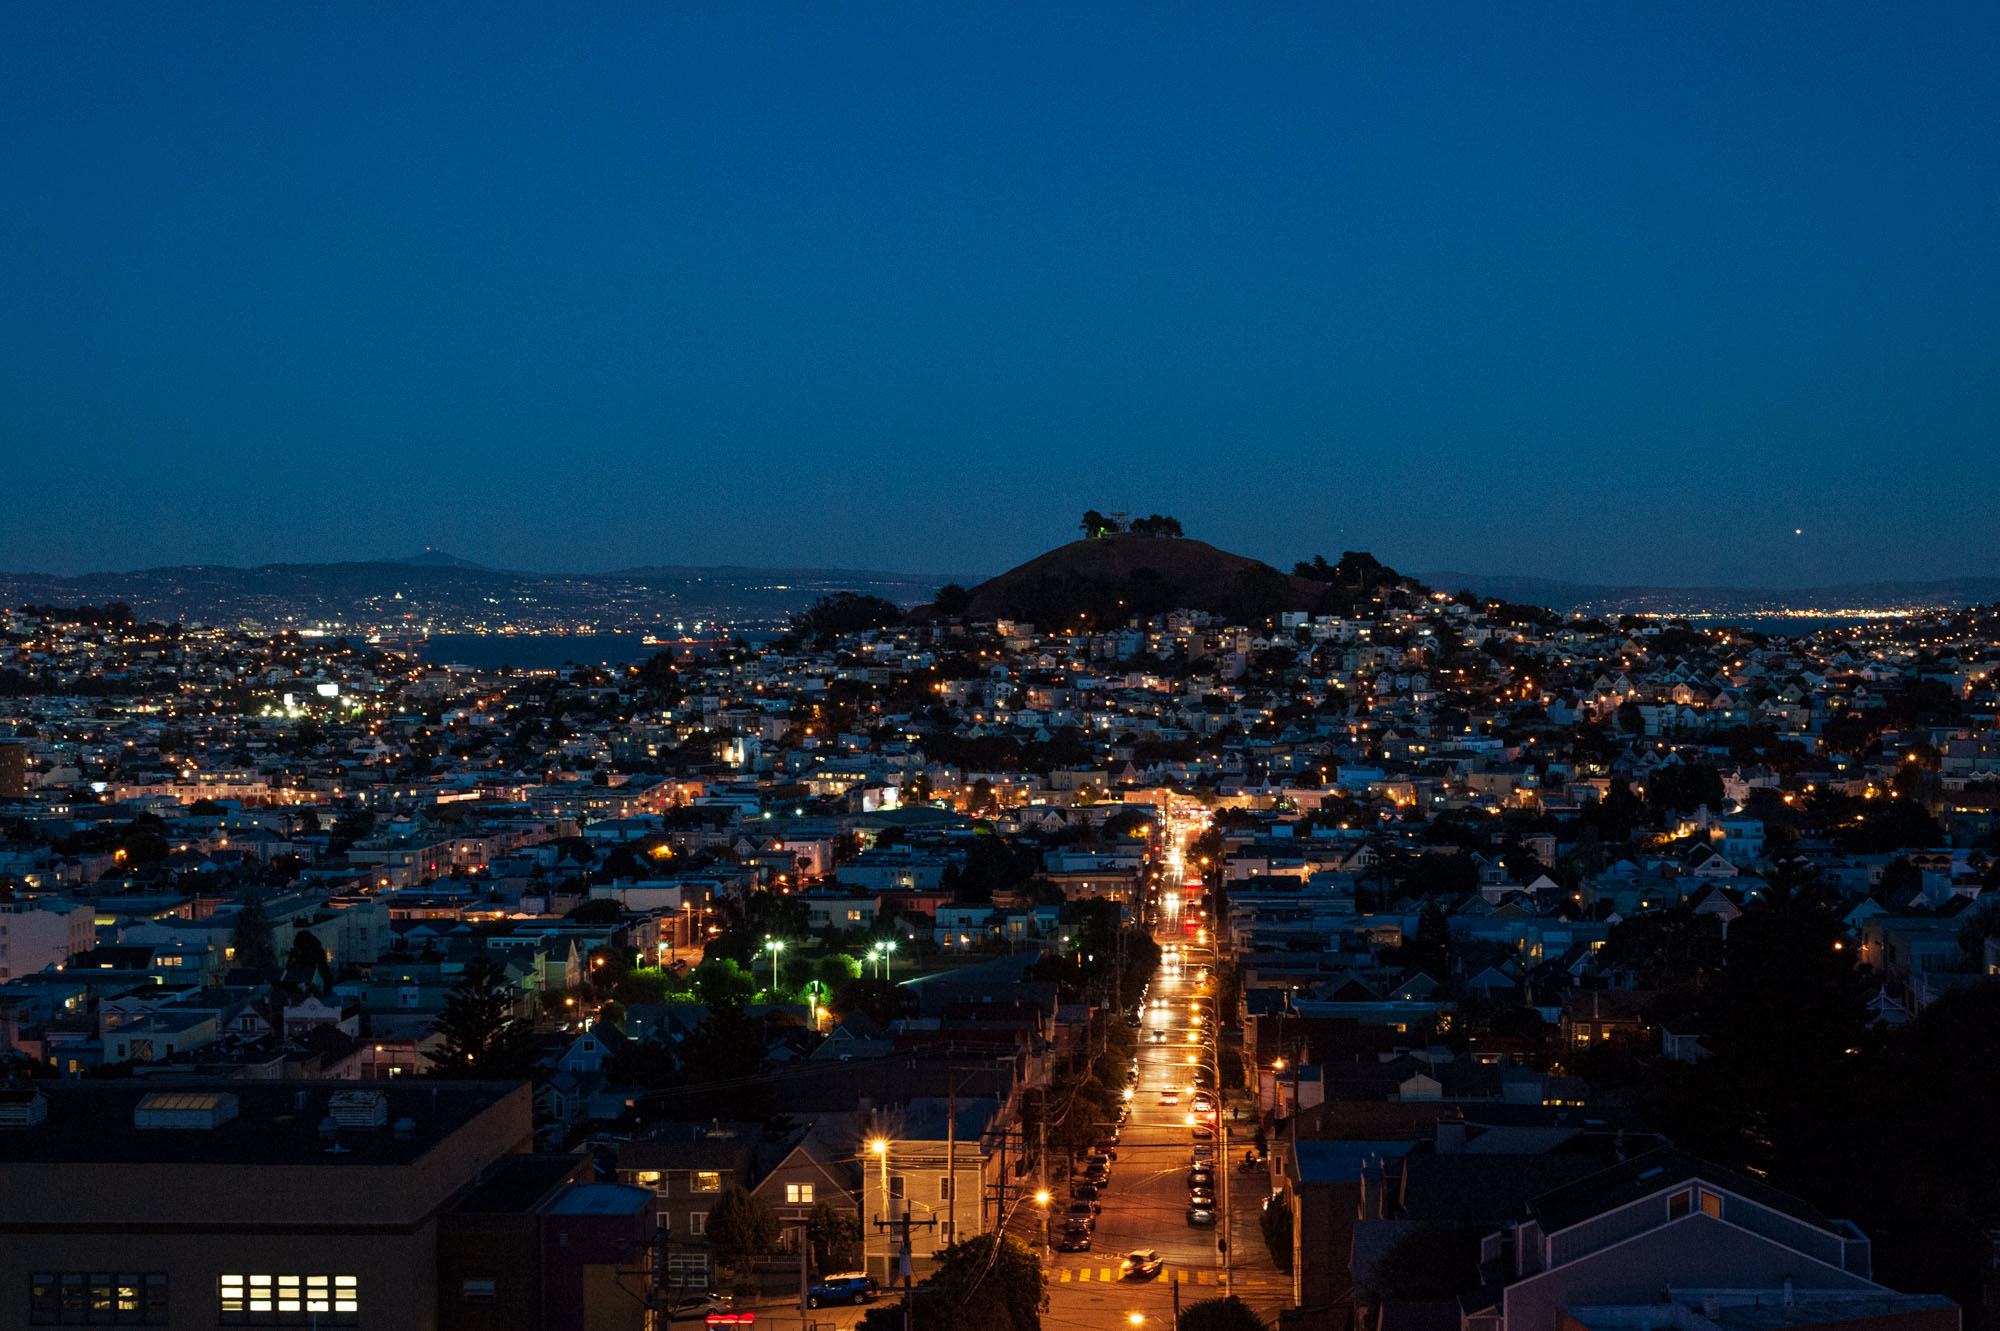 view from the top of a hill, overlooking Noe Valley in San Francisco